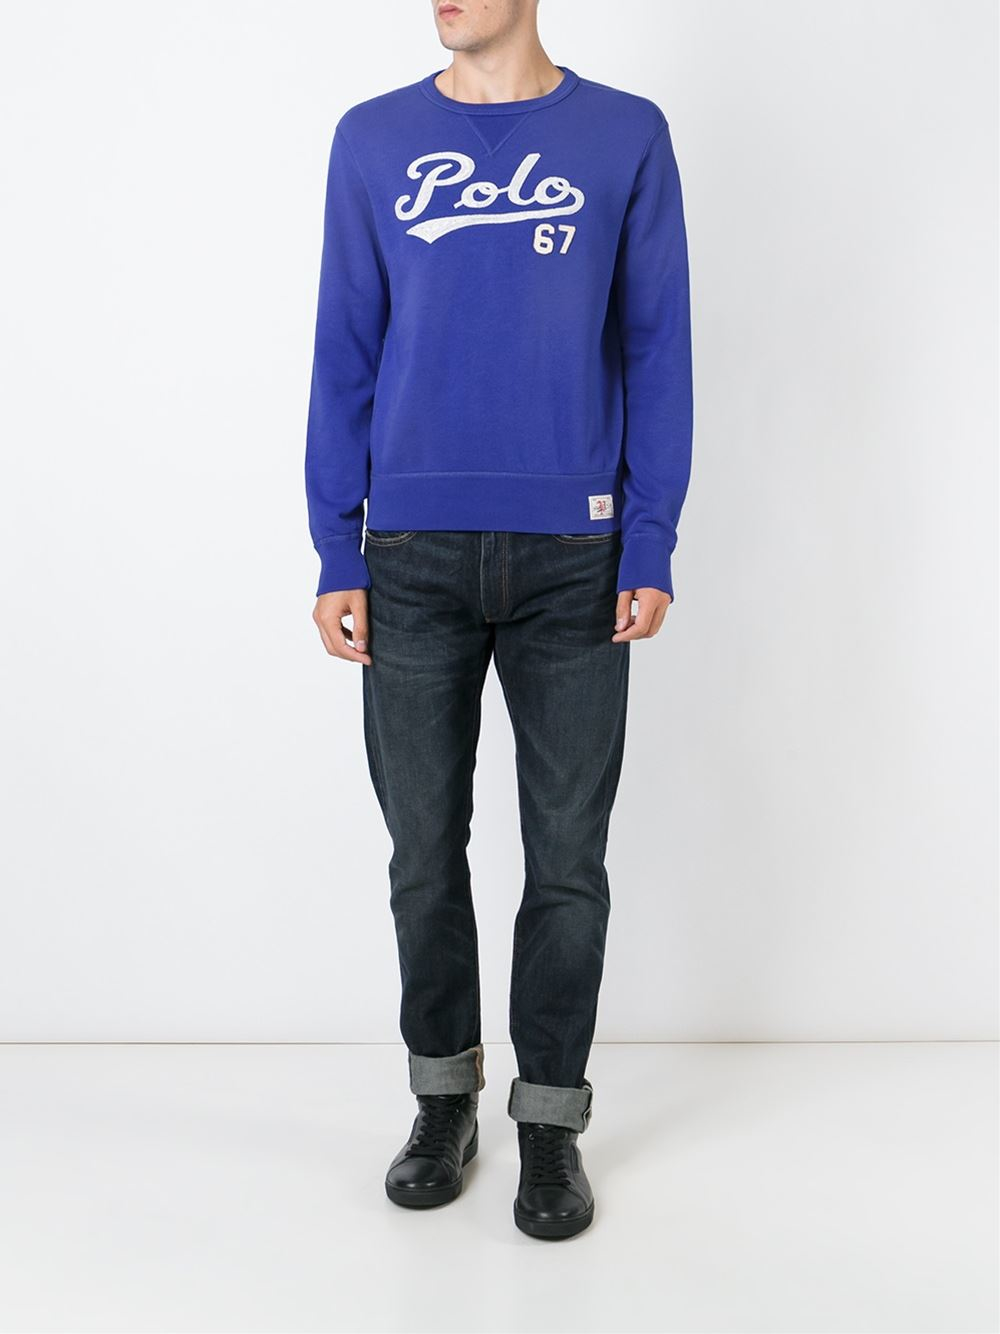 polo ralph lauren embroidered logo sweatshirt in blue for. Black Bedroom Furniture Sets. Home Design Ideas